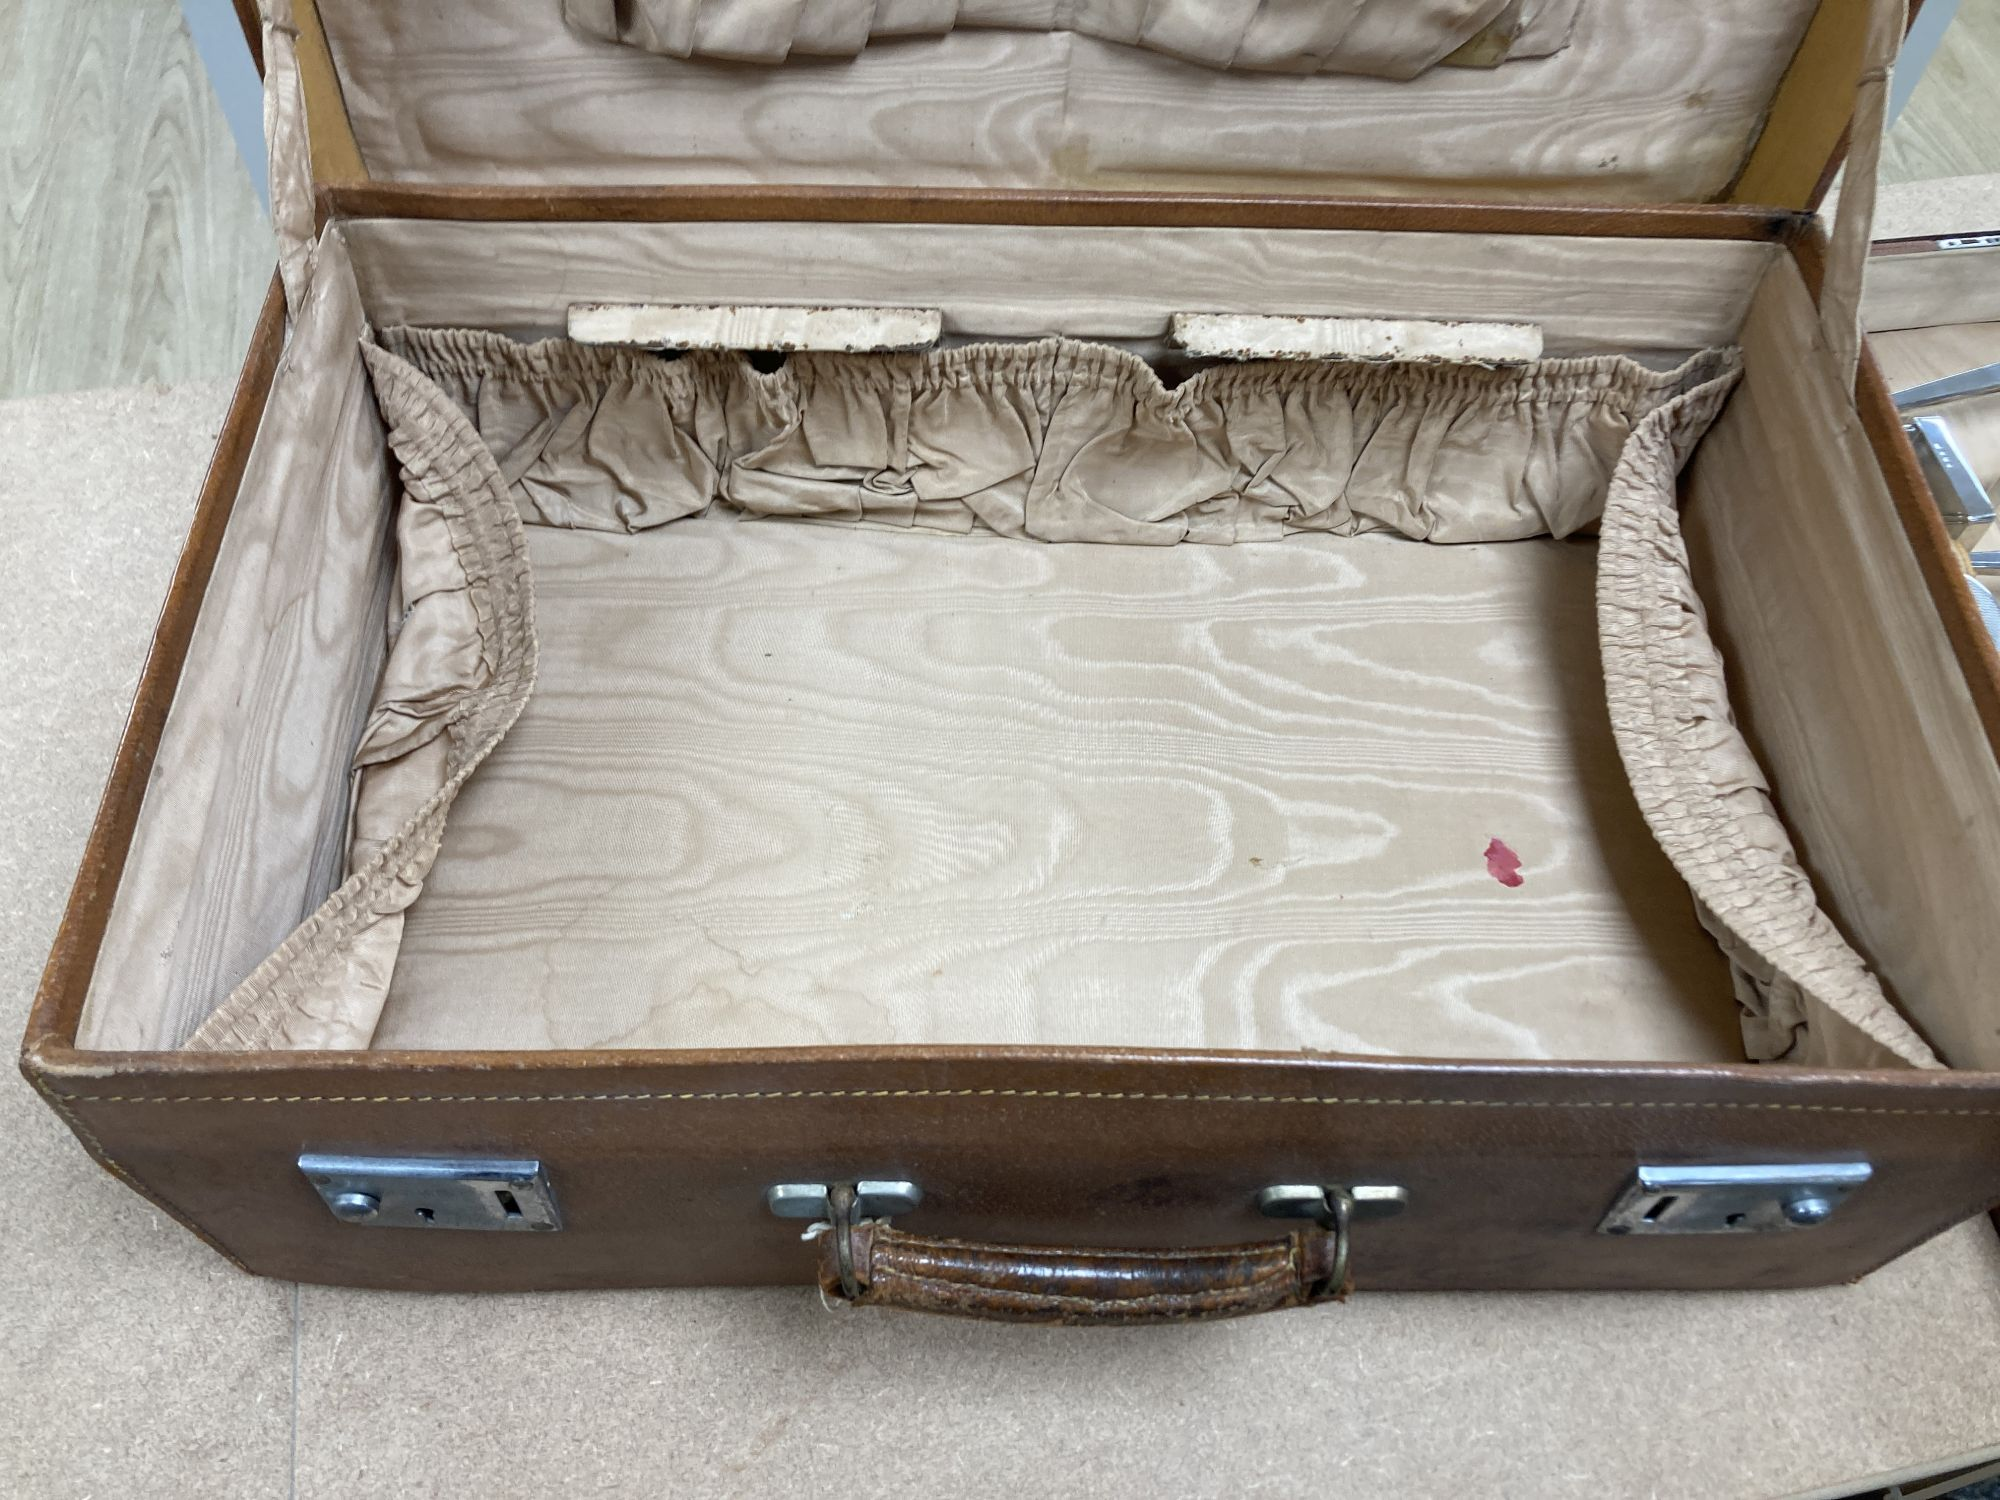 A 1930's Art Deco leather travelling toilet case, containing eleven silver mounted jars, mirror, and - Image 3 of 4